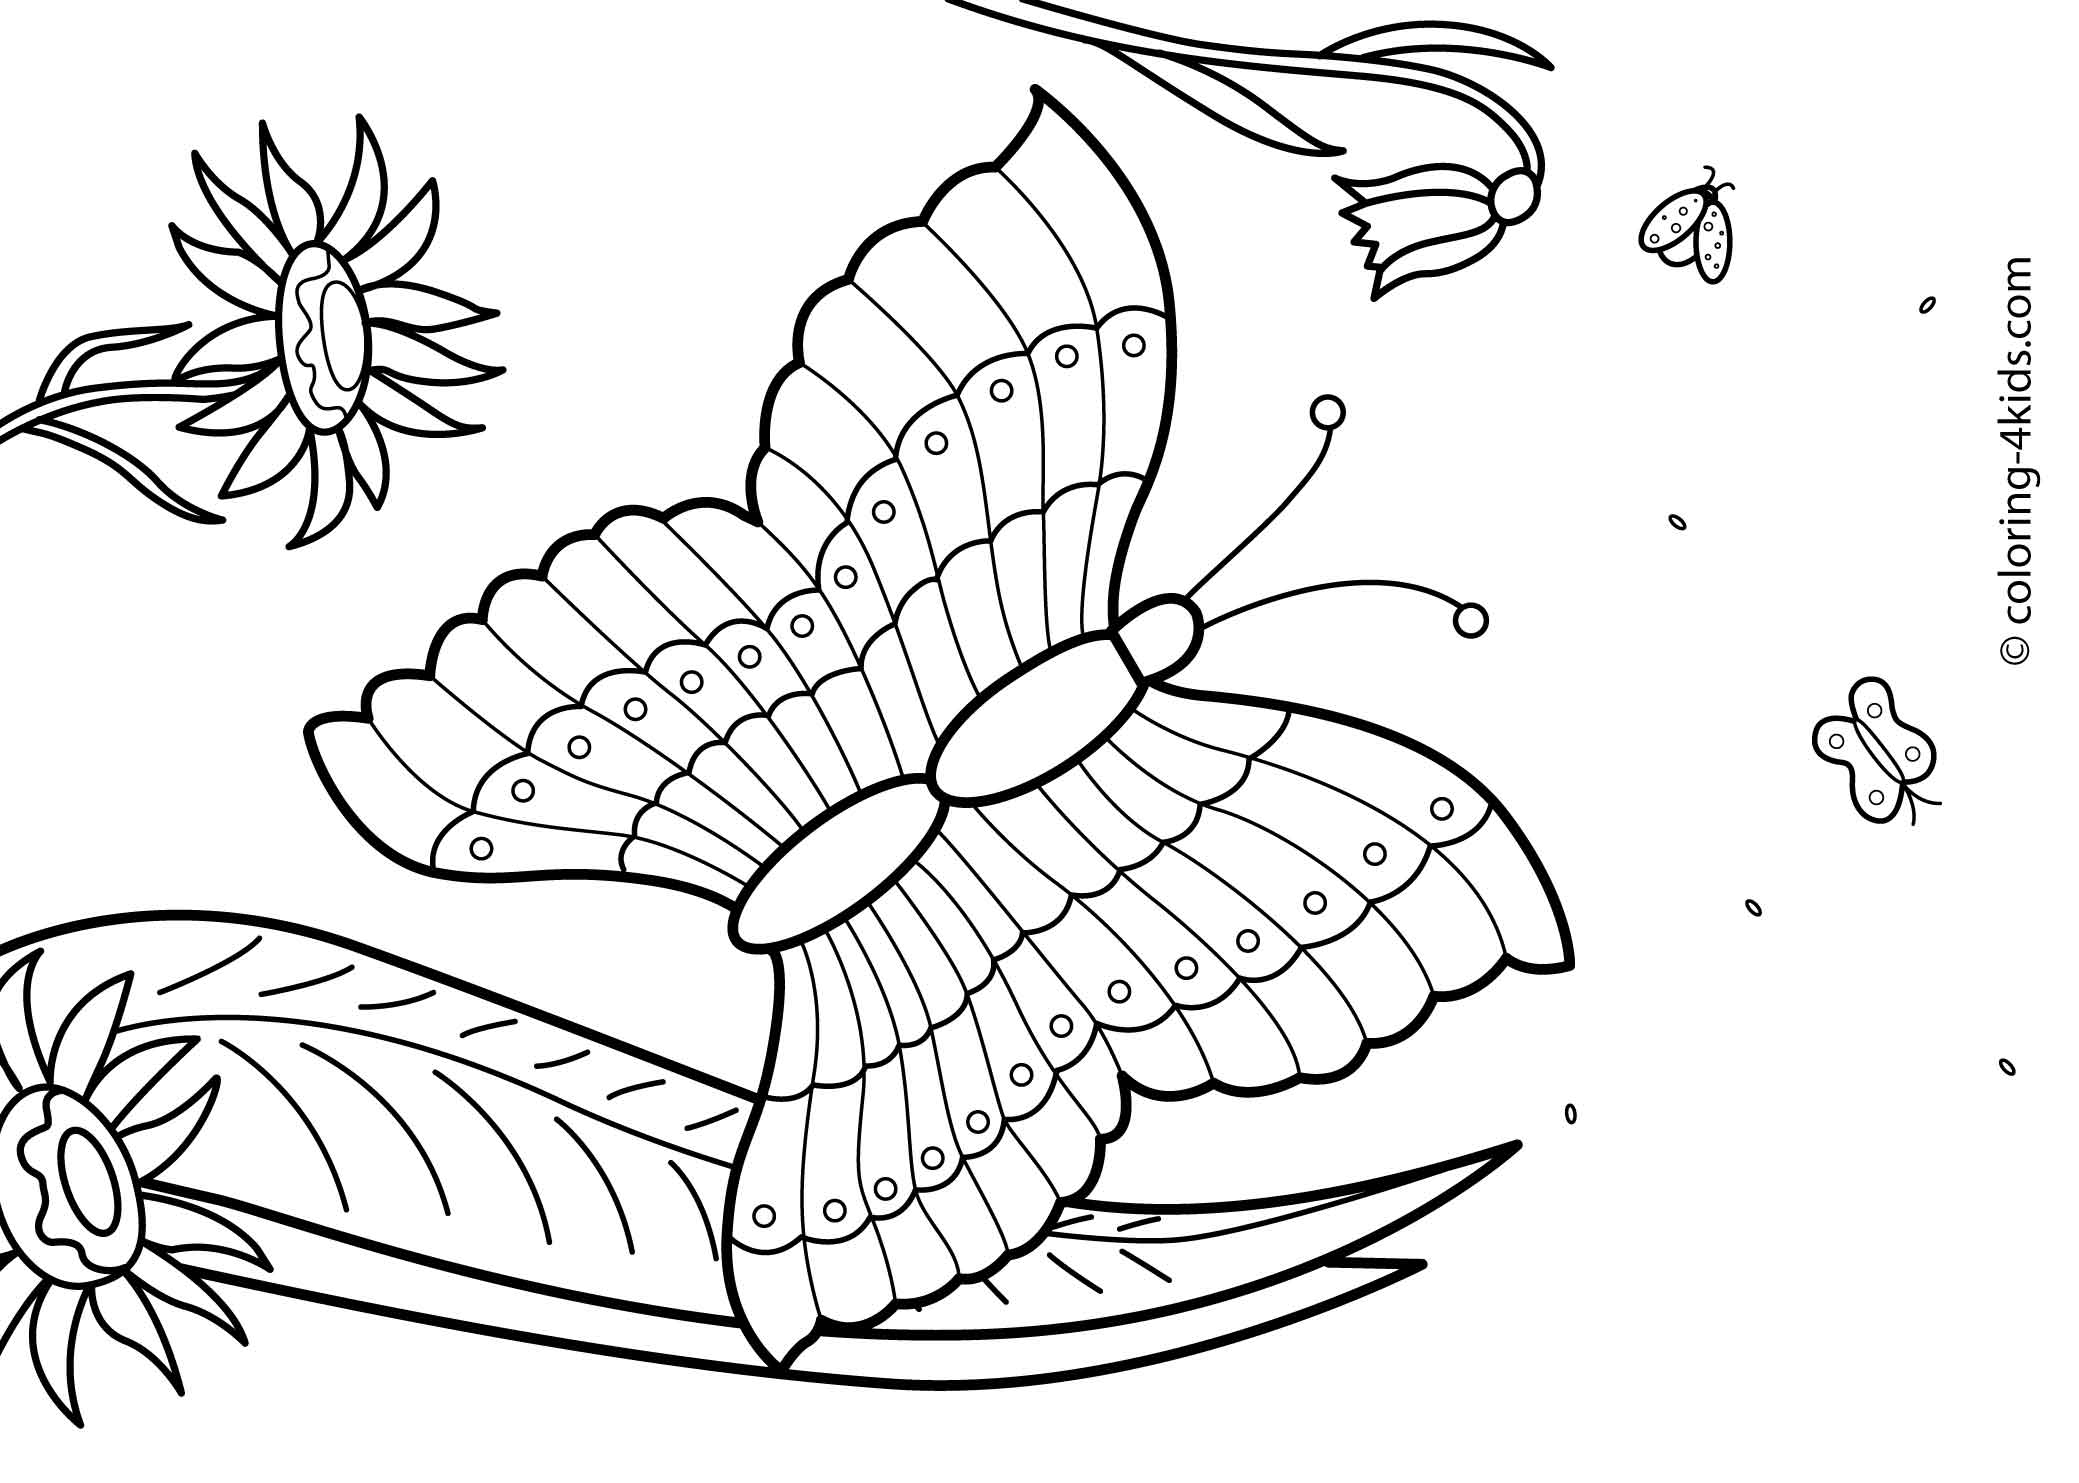 27 Summer season coloring pages